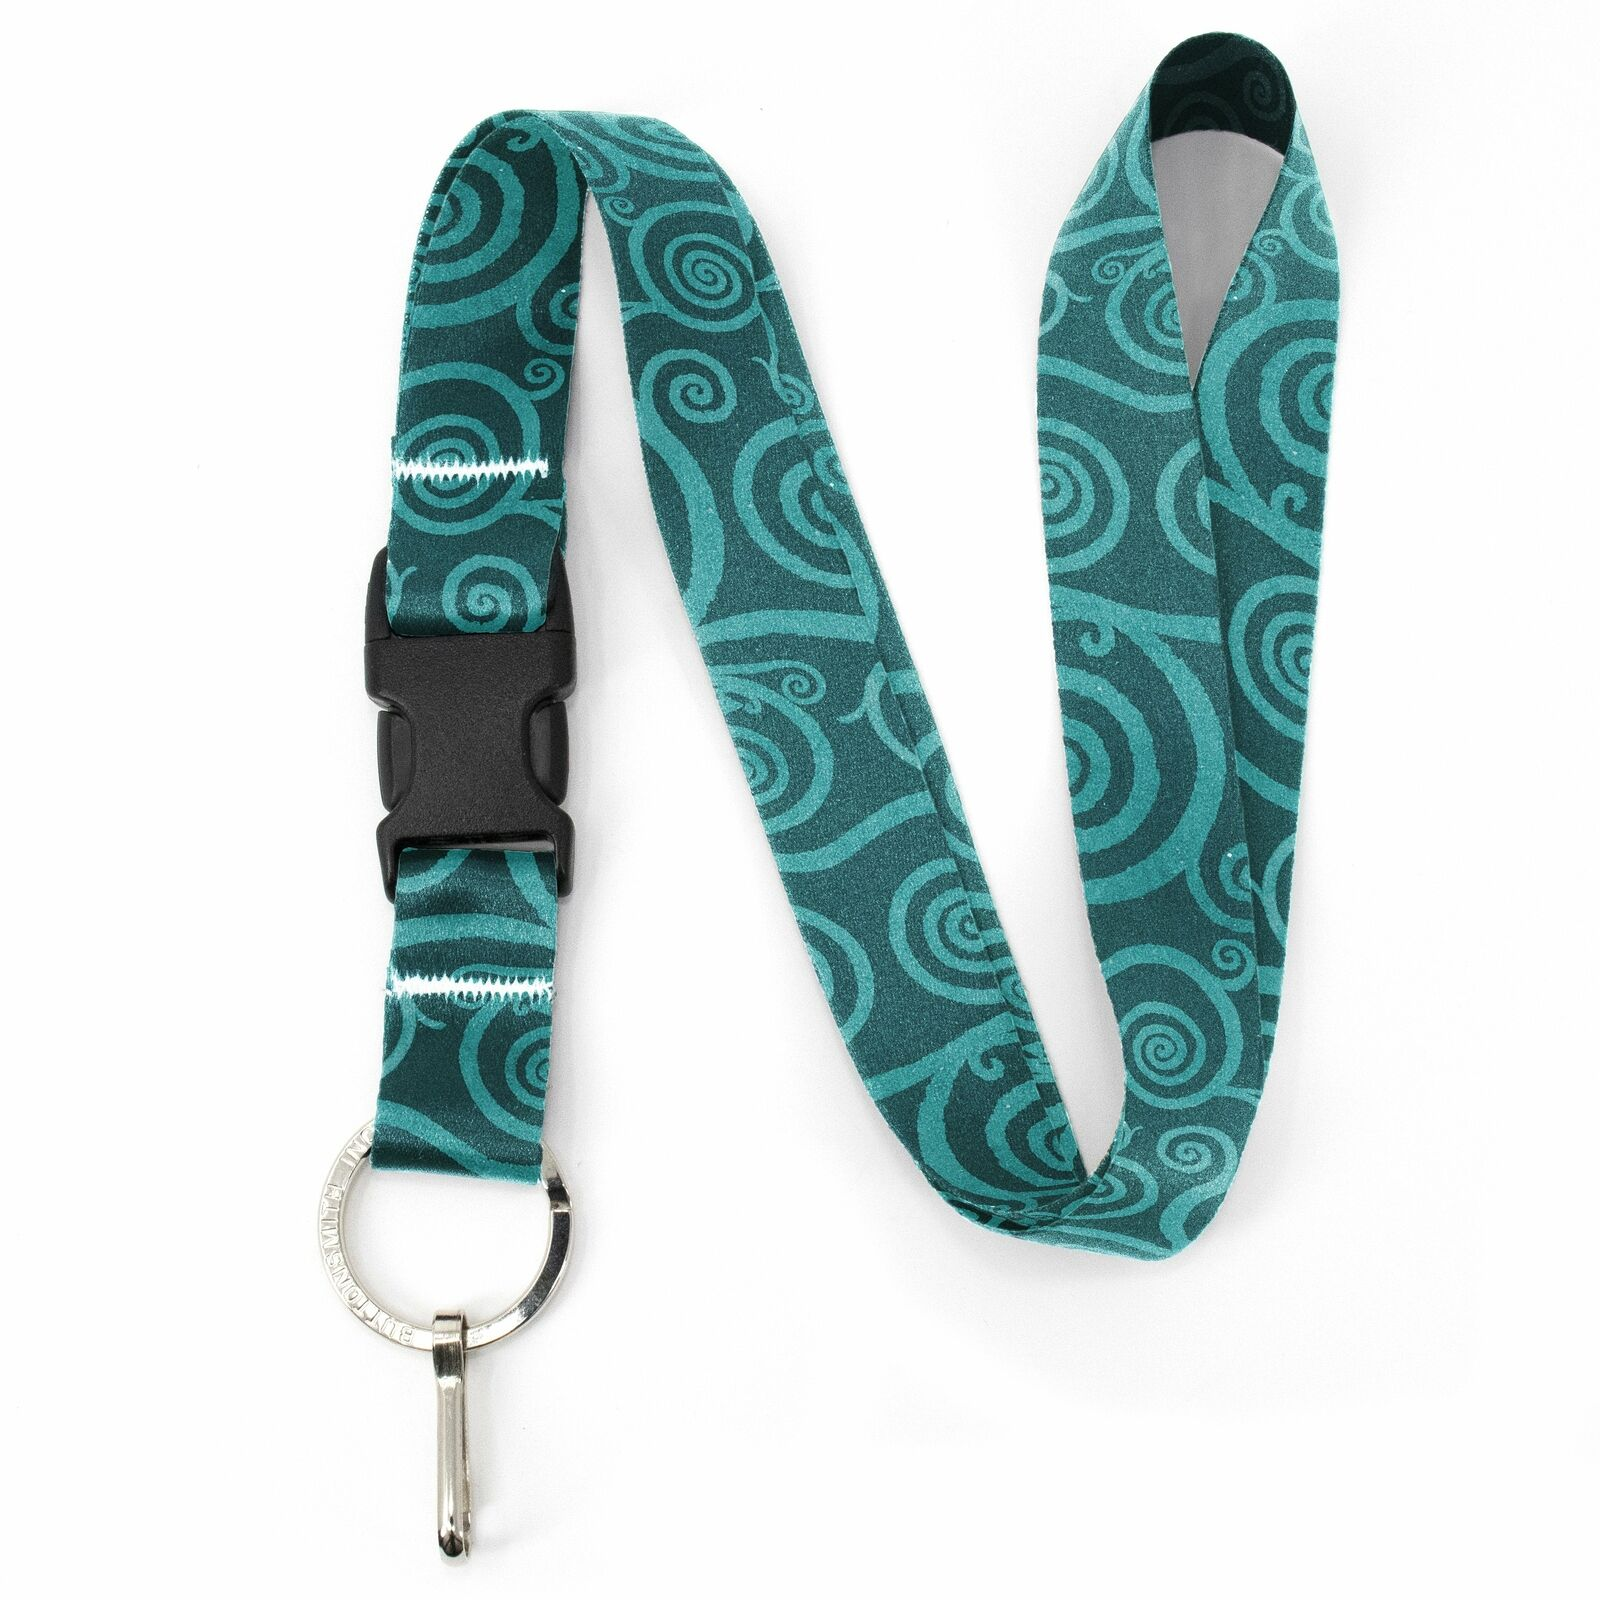 Buttonsmith Aquamarine Swirls Premium Lanyard - with Buckle and Flat Ring - Made